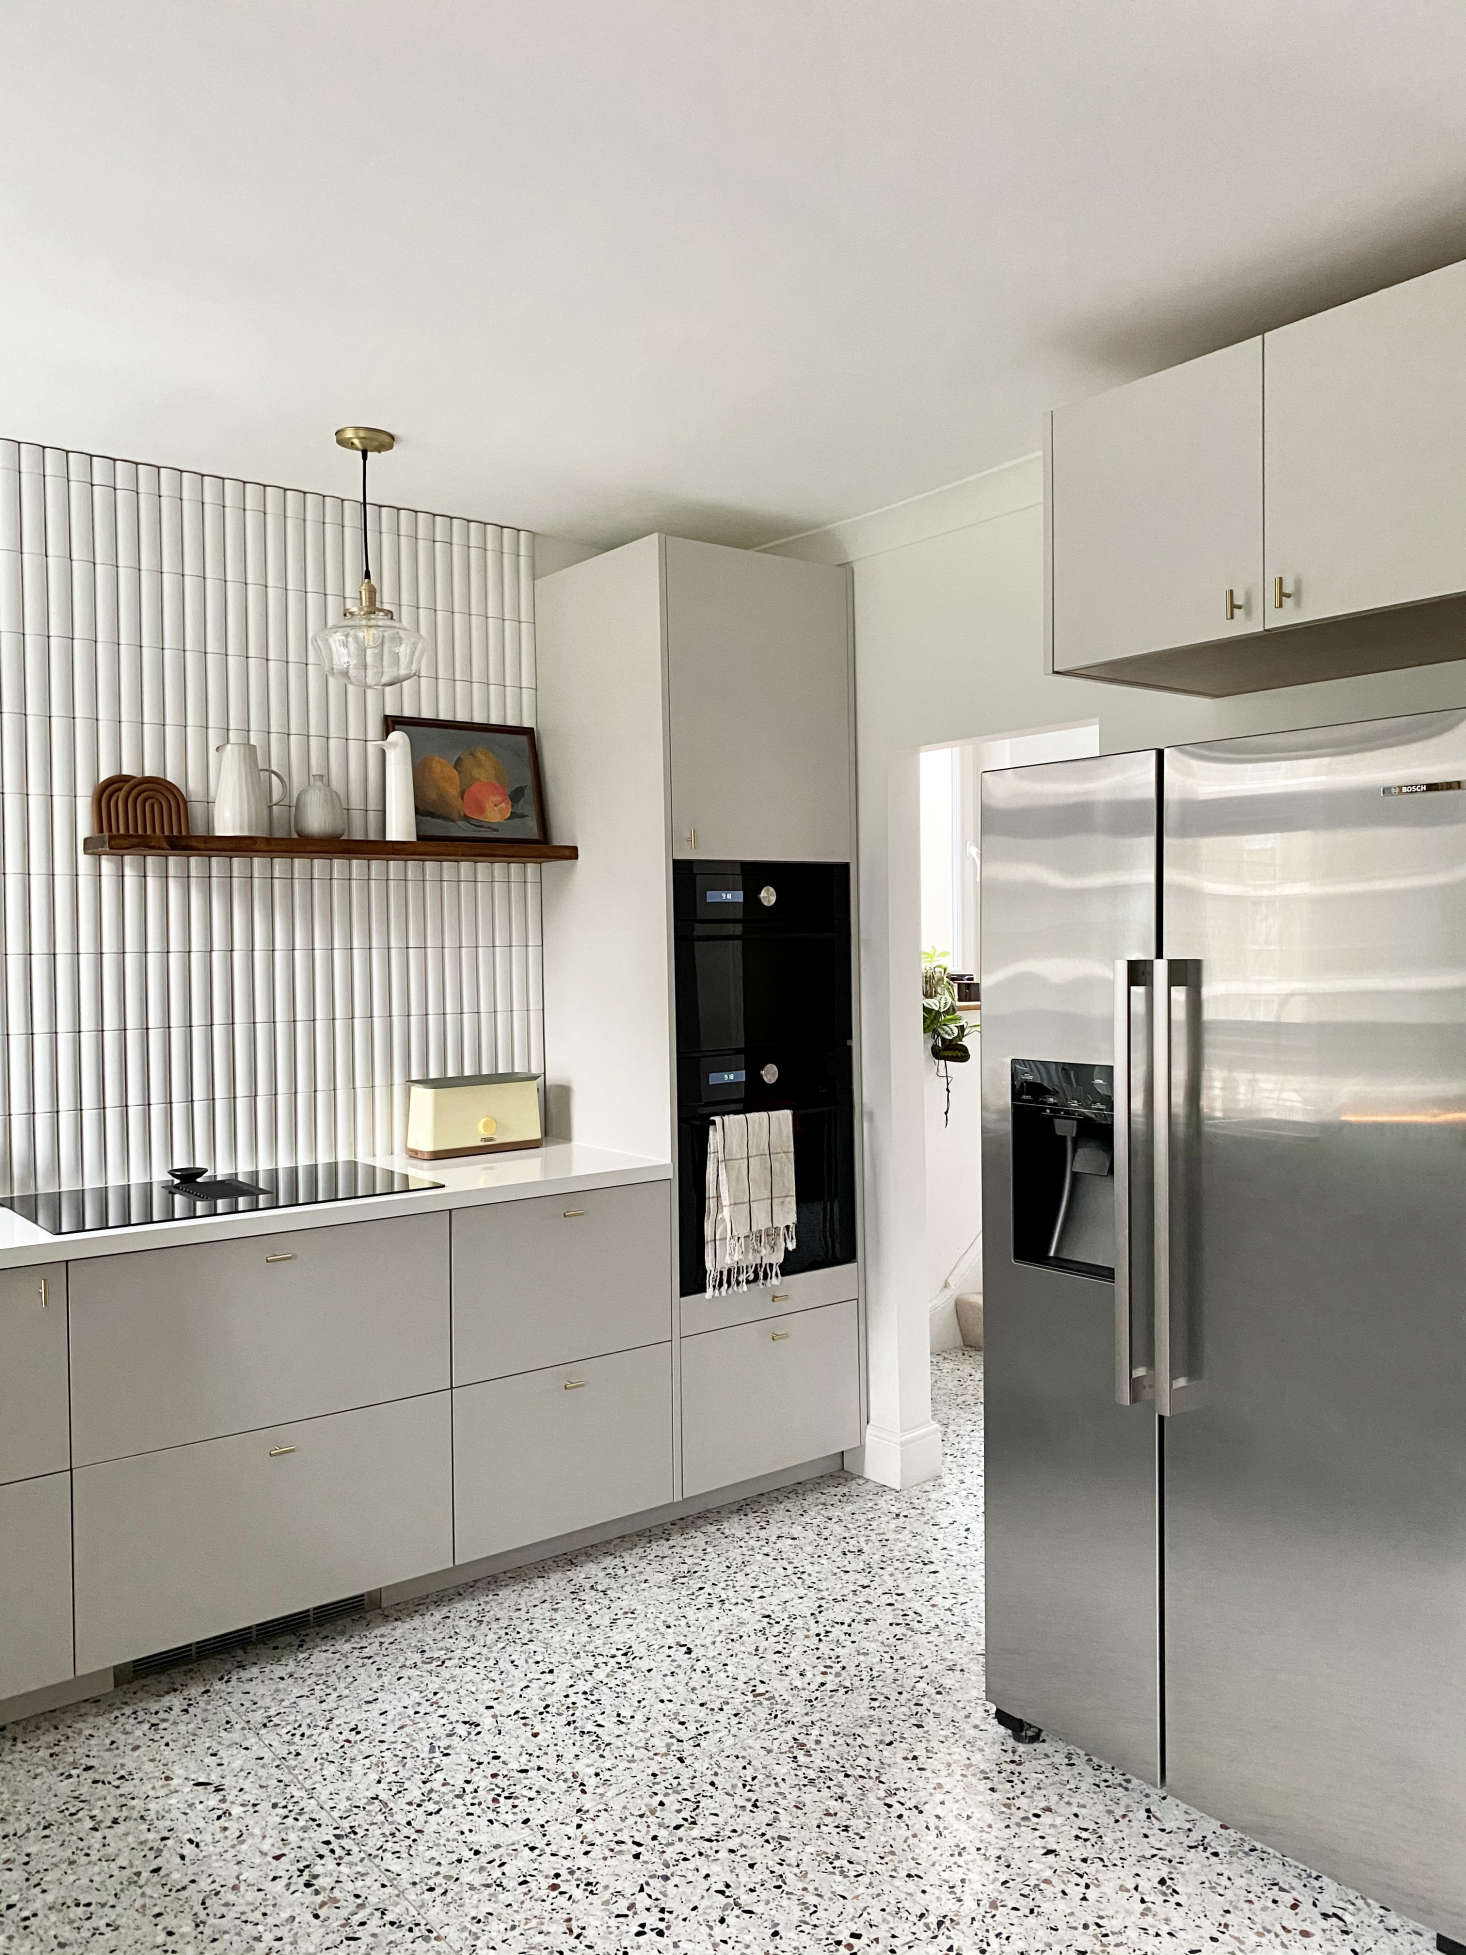 The fridge, a Bosch, is now centrally located. The &#8